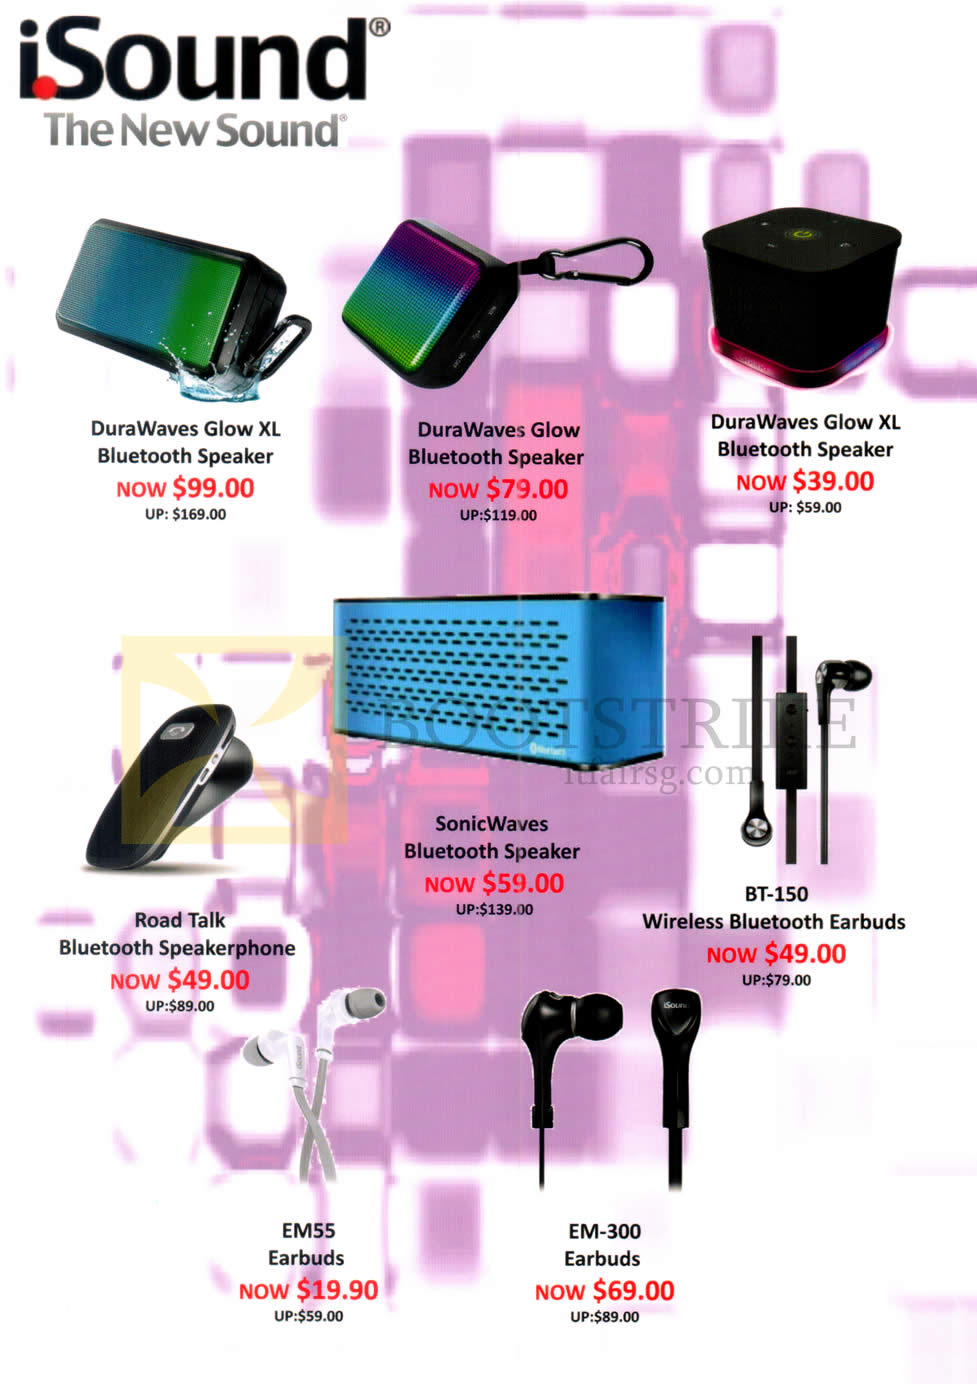 COMEX 2016 price list image brochure of Epicentre ISound Speaker, Earbuds, Durawaves Glow XL, Glow, Road Talk, SonicWaves, BT-150, EM55, EM-300